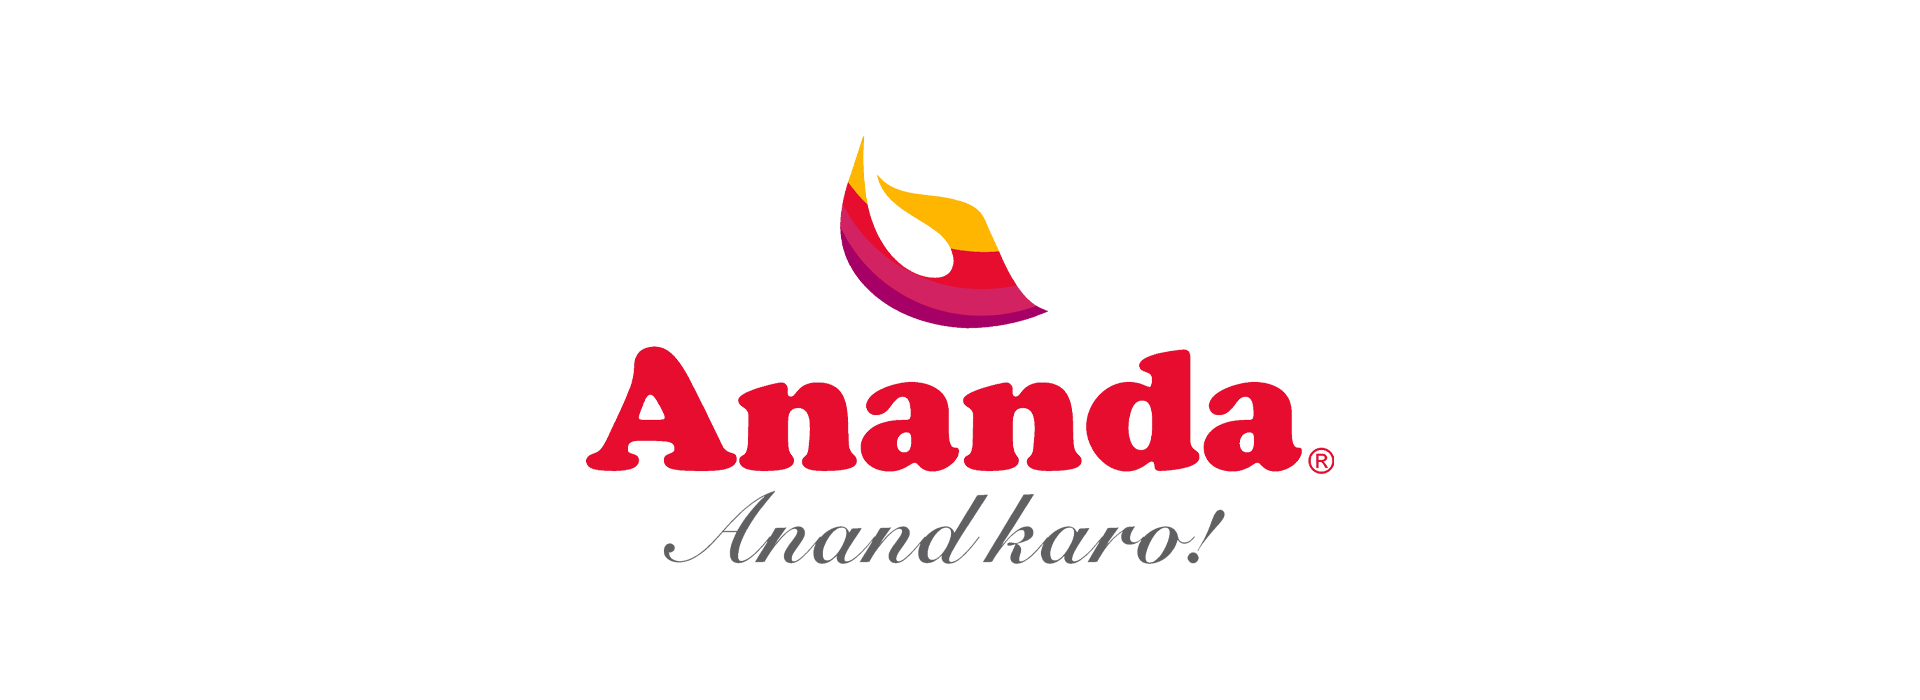 Inventory Management System Spurs Ananda Dairy's Growth